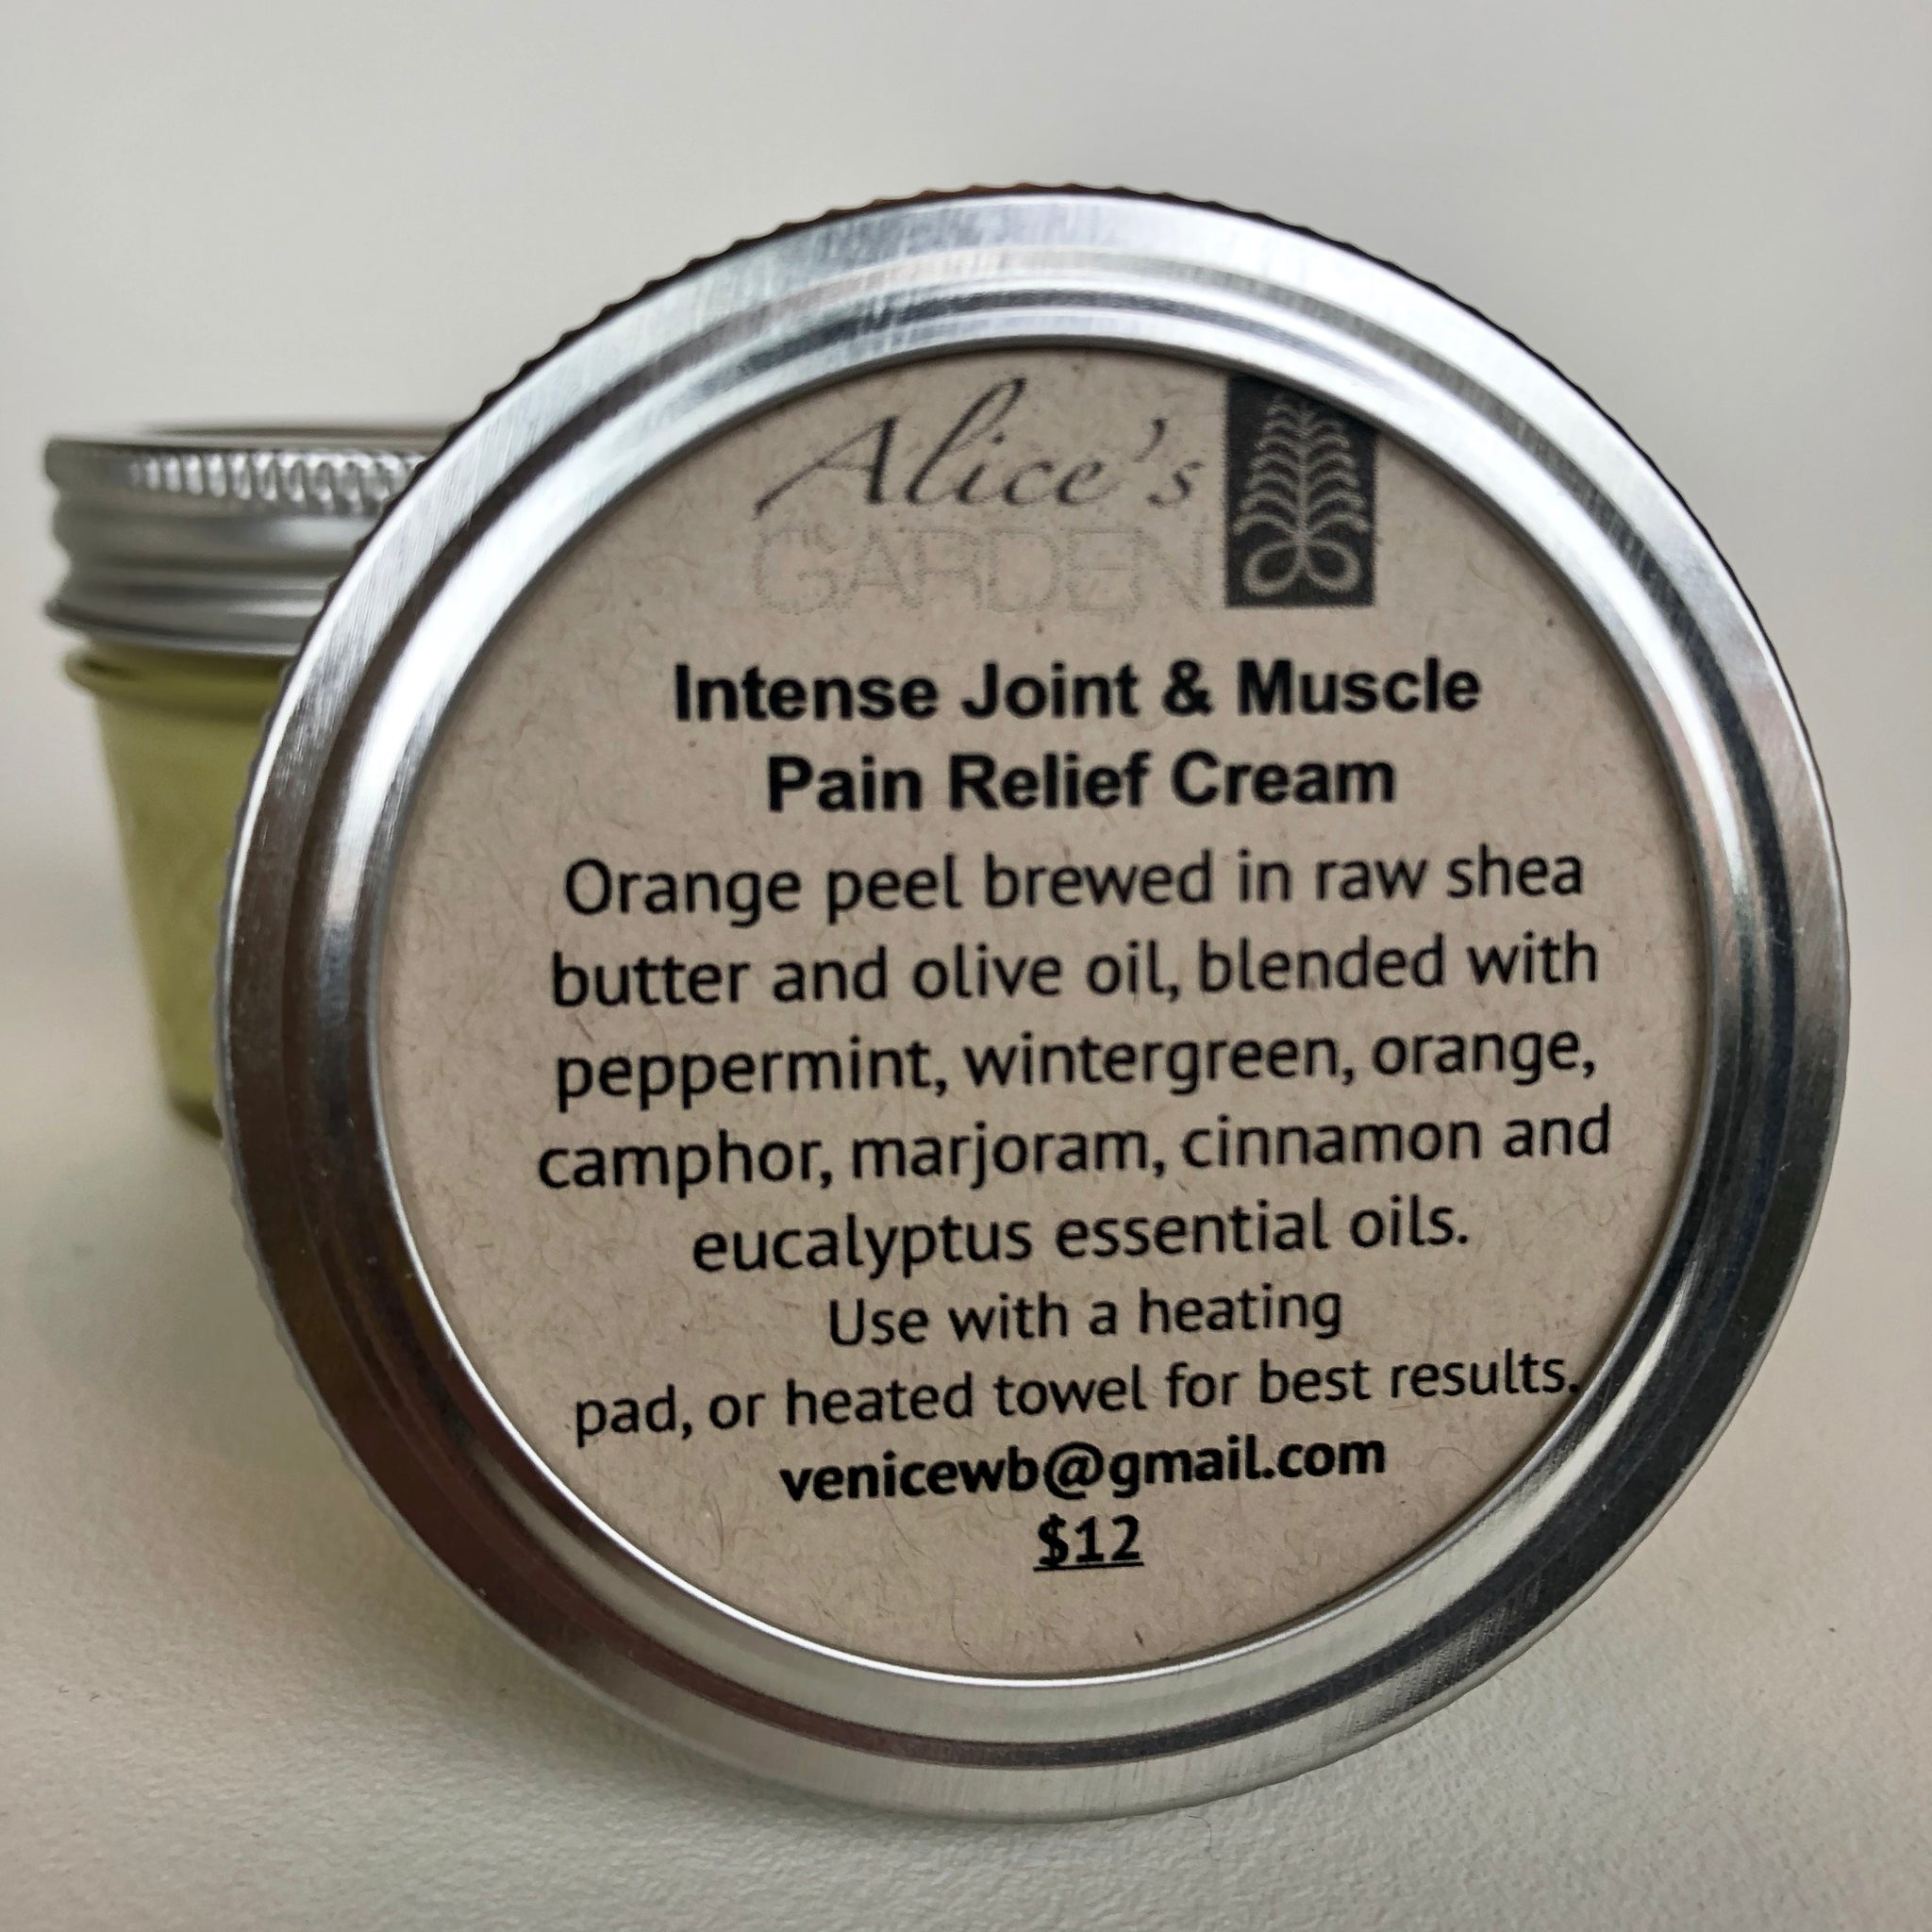 Alice's Garden Intense Joint & Muscle Pain Relief Cream